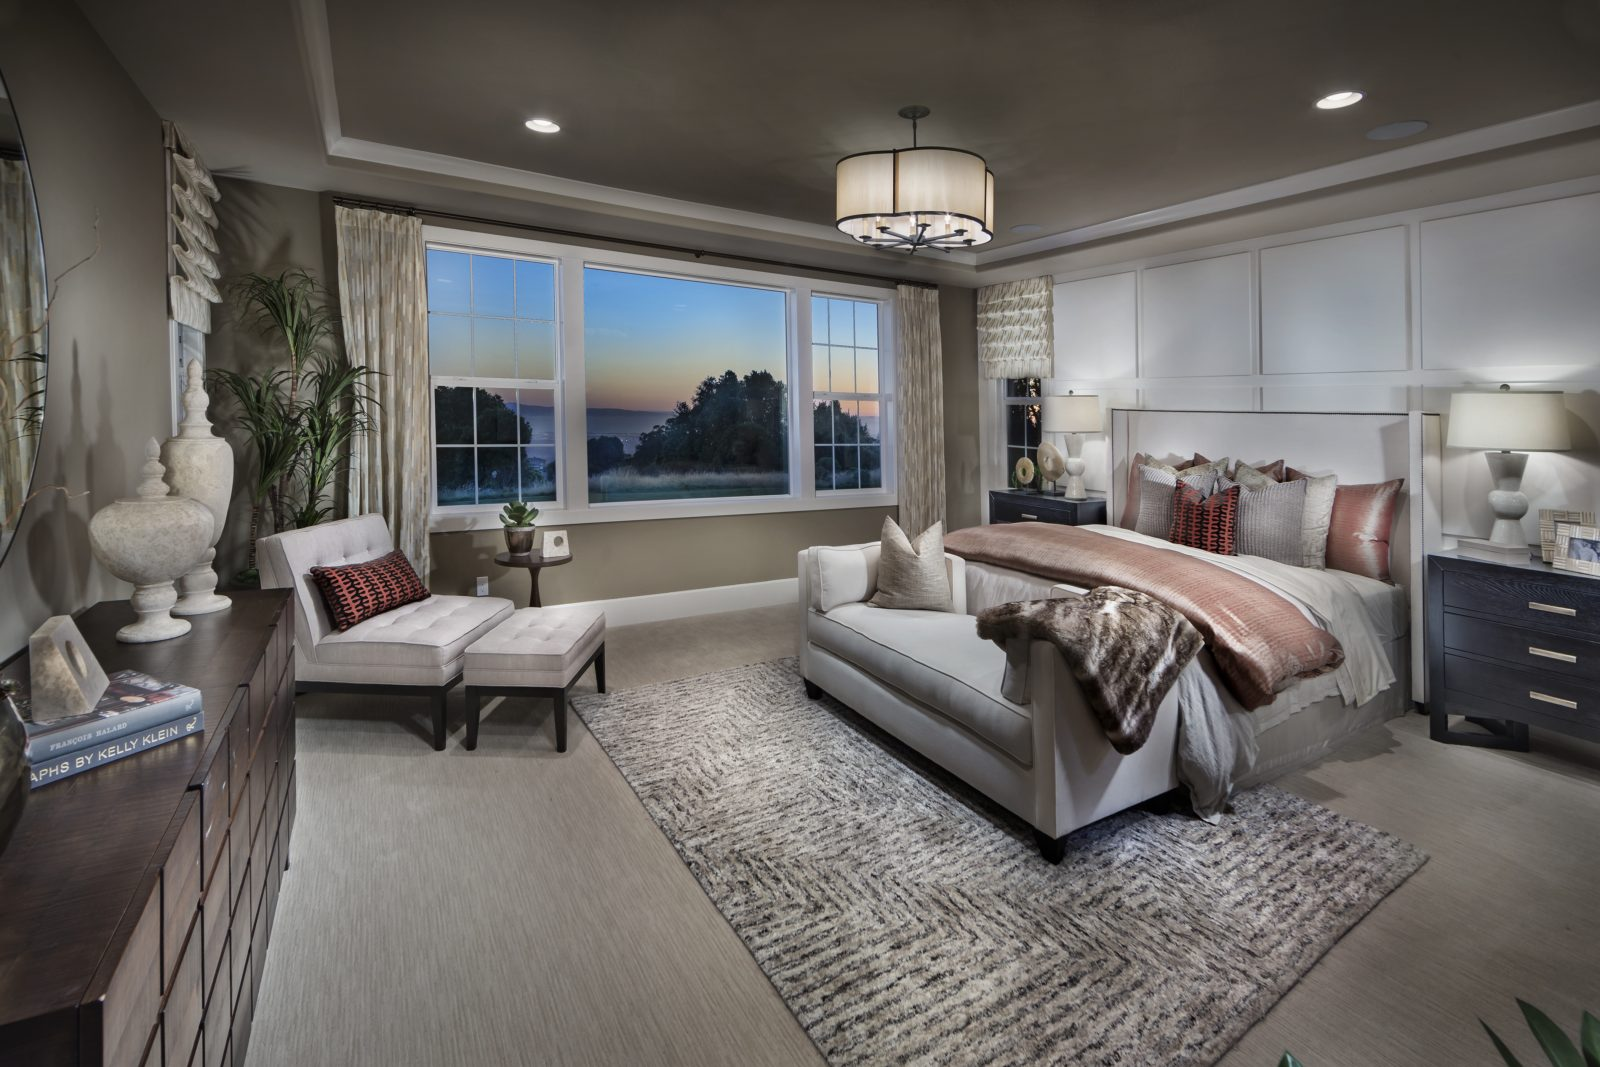 Owner bedroom in new luxury home | Crown Point at Stonebrae in Hayward, CA | Brookfield Residential